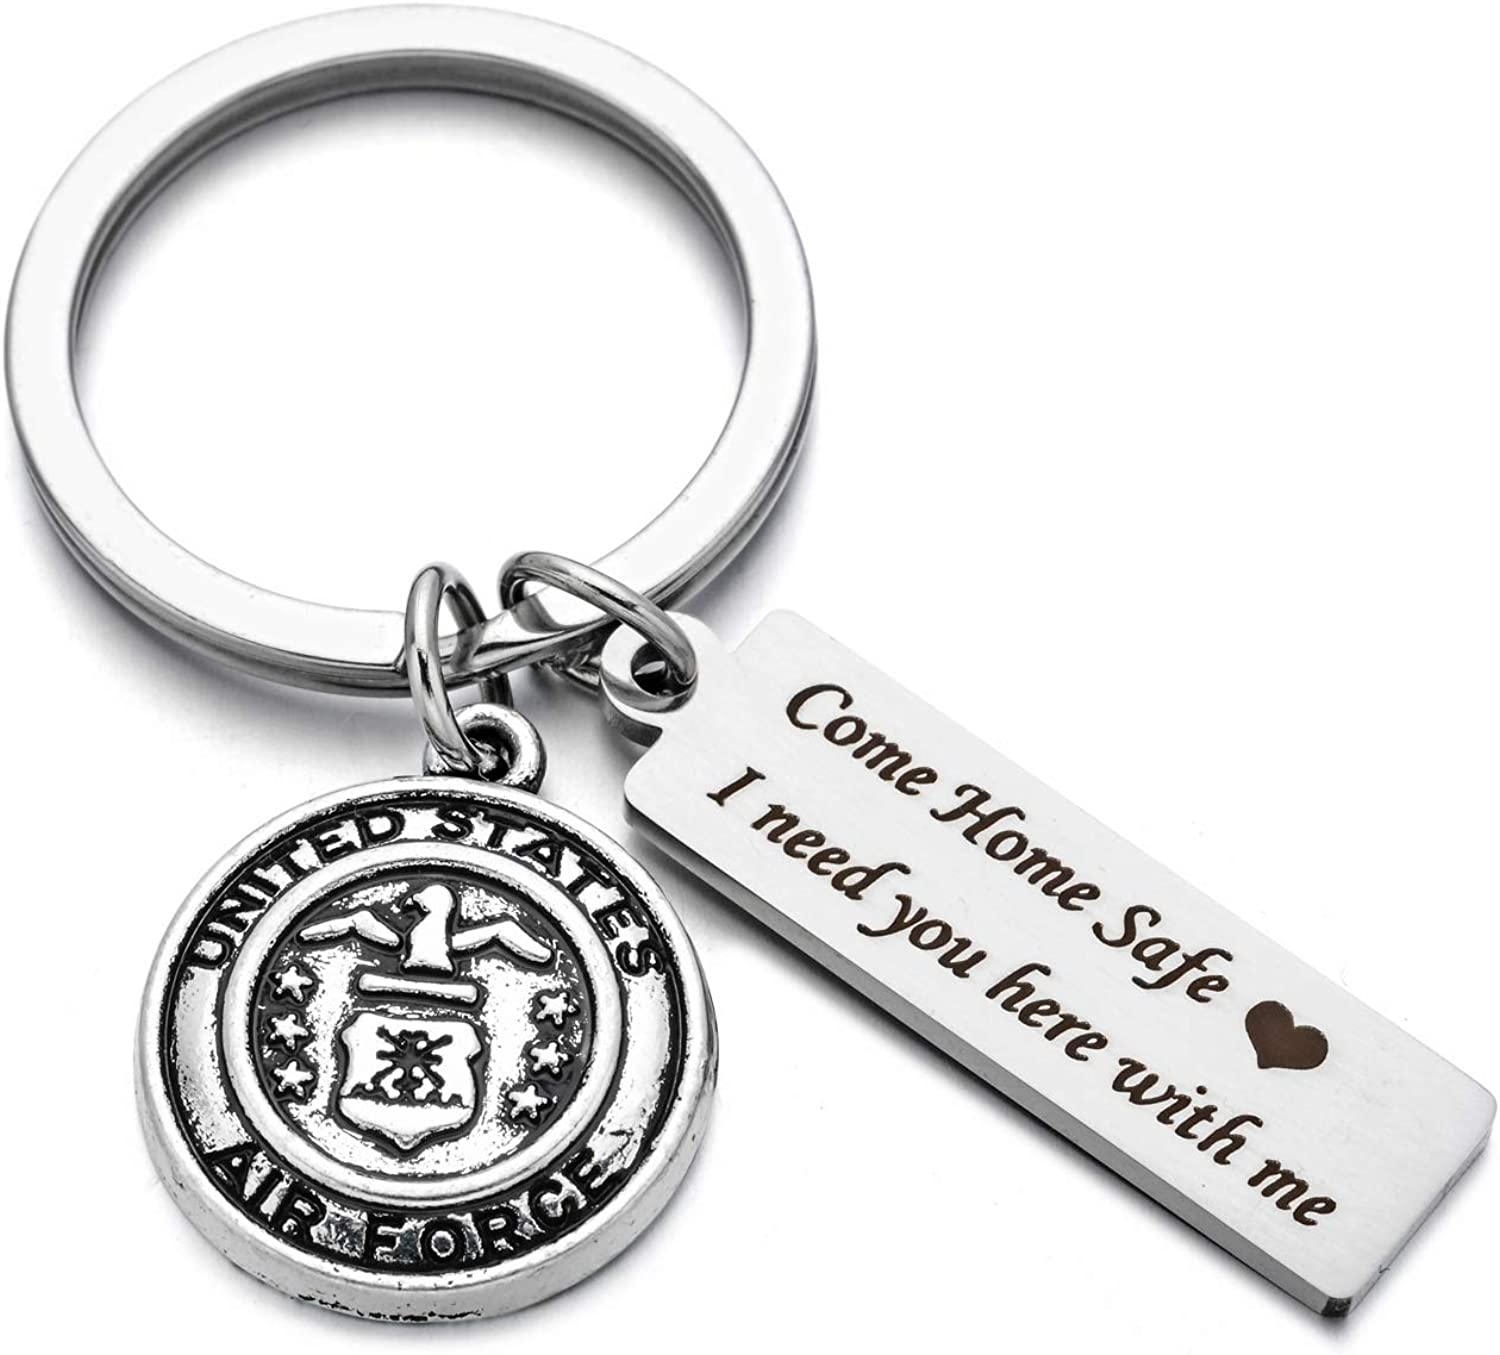 Drive Safe Charms Keychain Come Home Safe I Need You Here With Me Dad Husband Boyfriend Gift